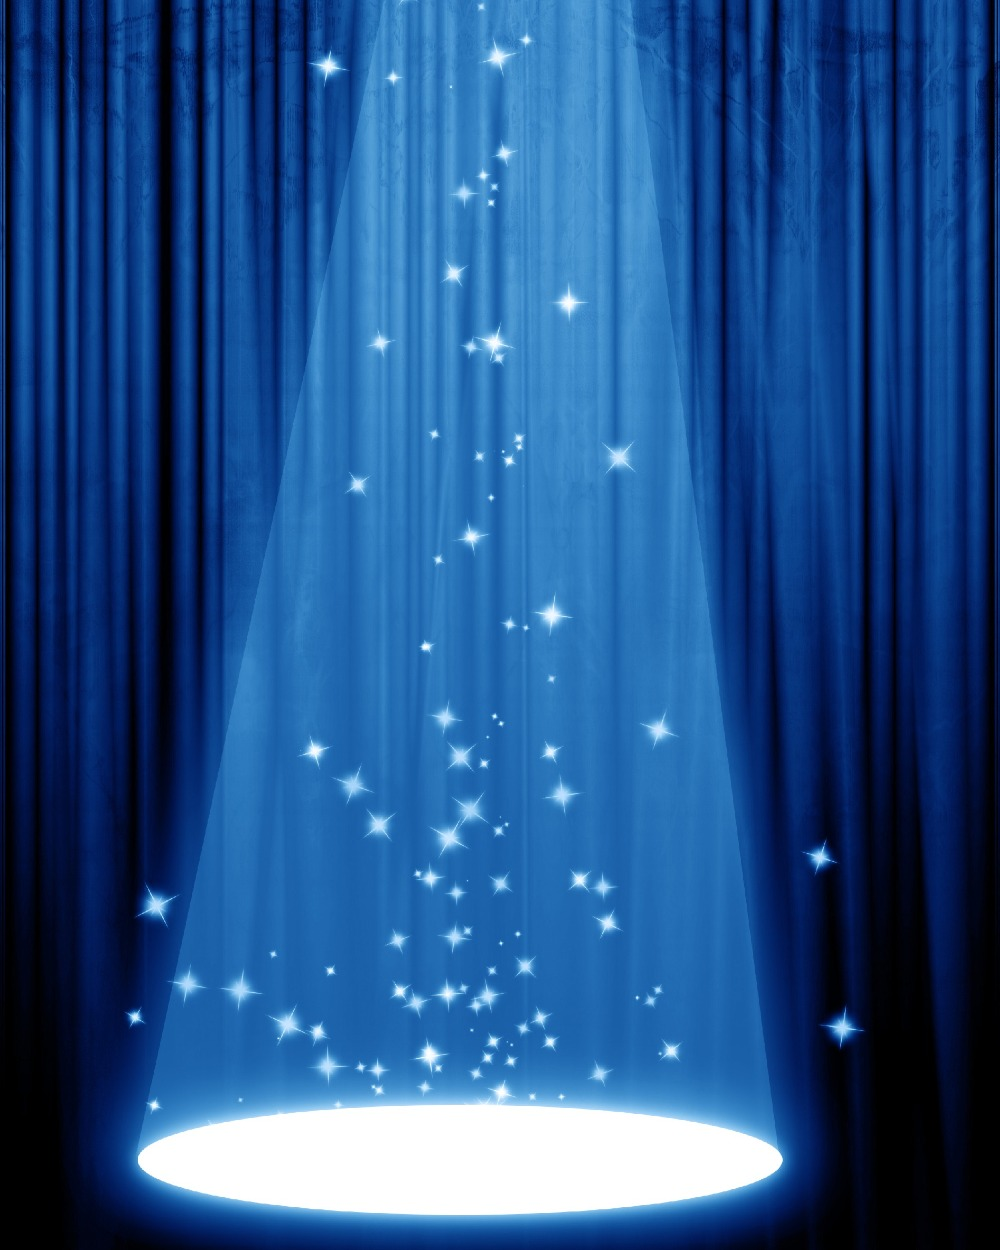 Theater Lights Background: Royal Blue Curtain Shine Light Theater Stage Photography